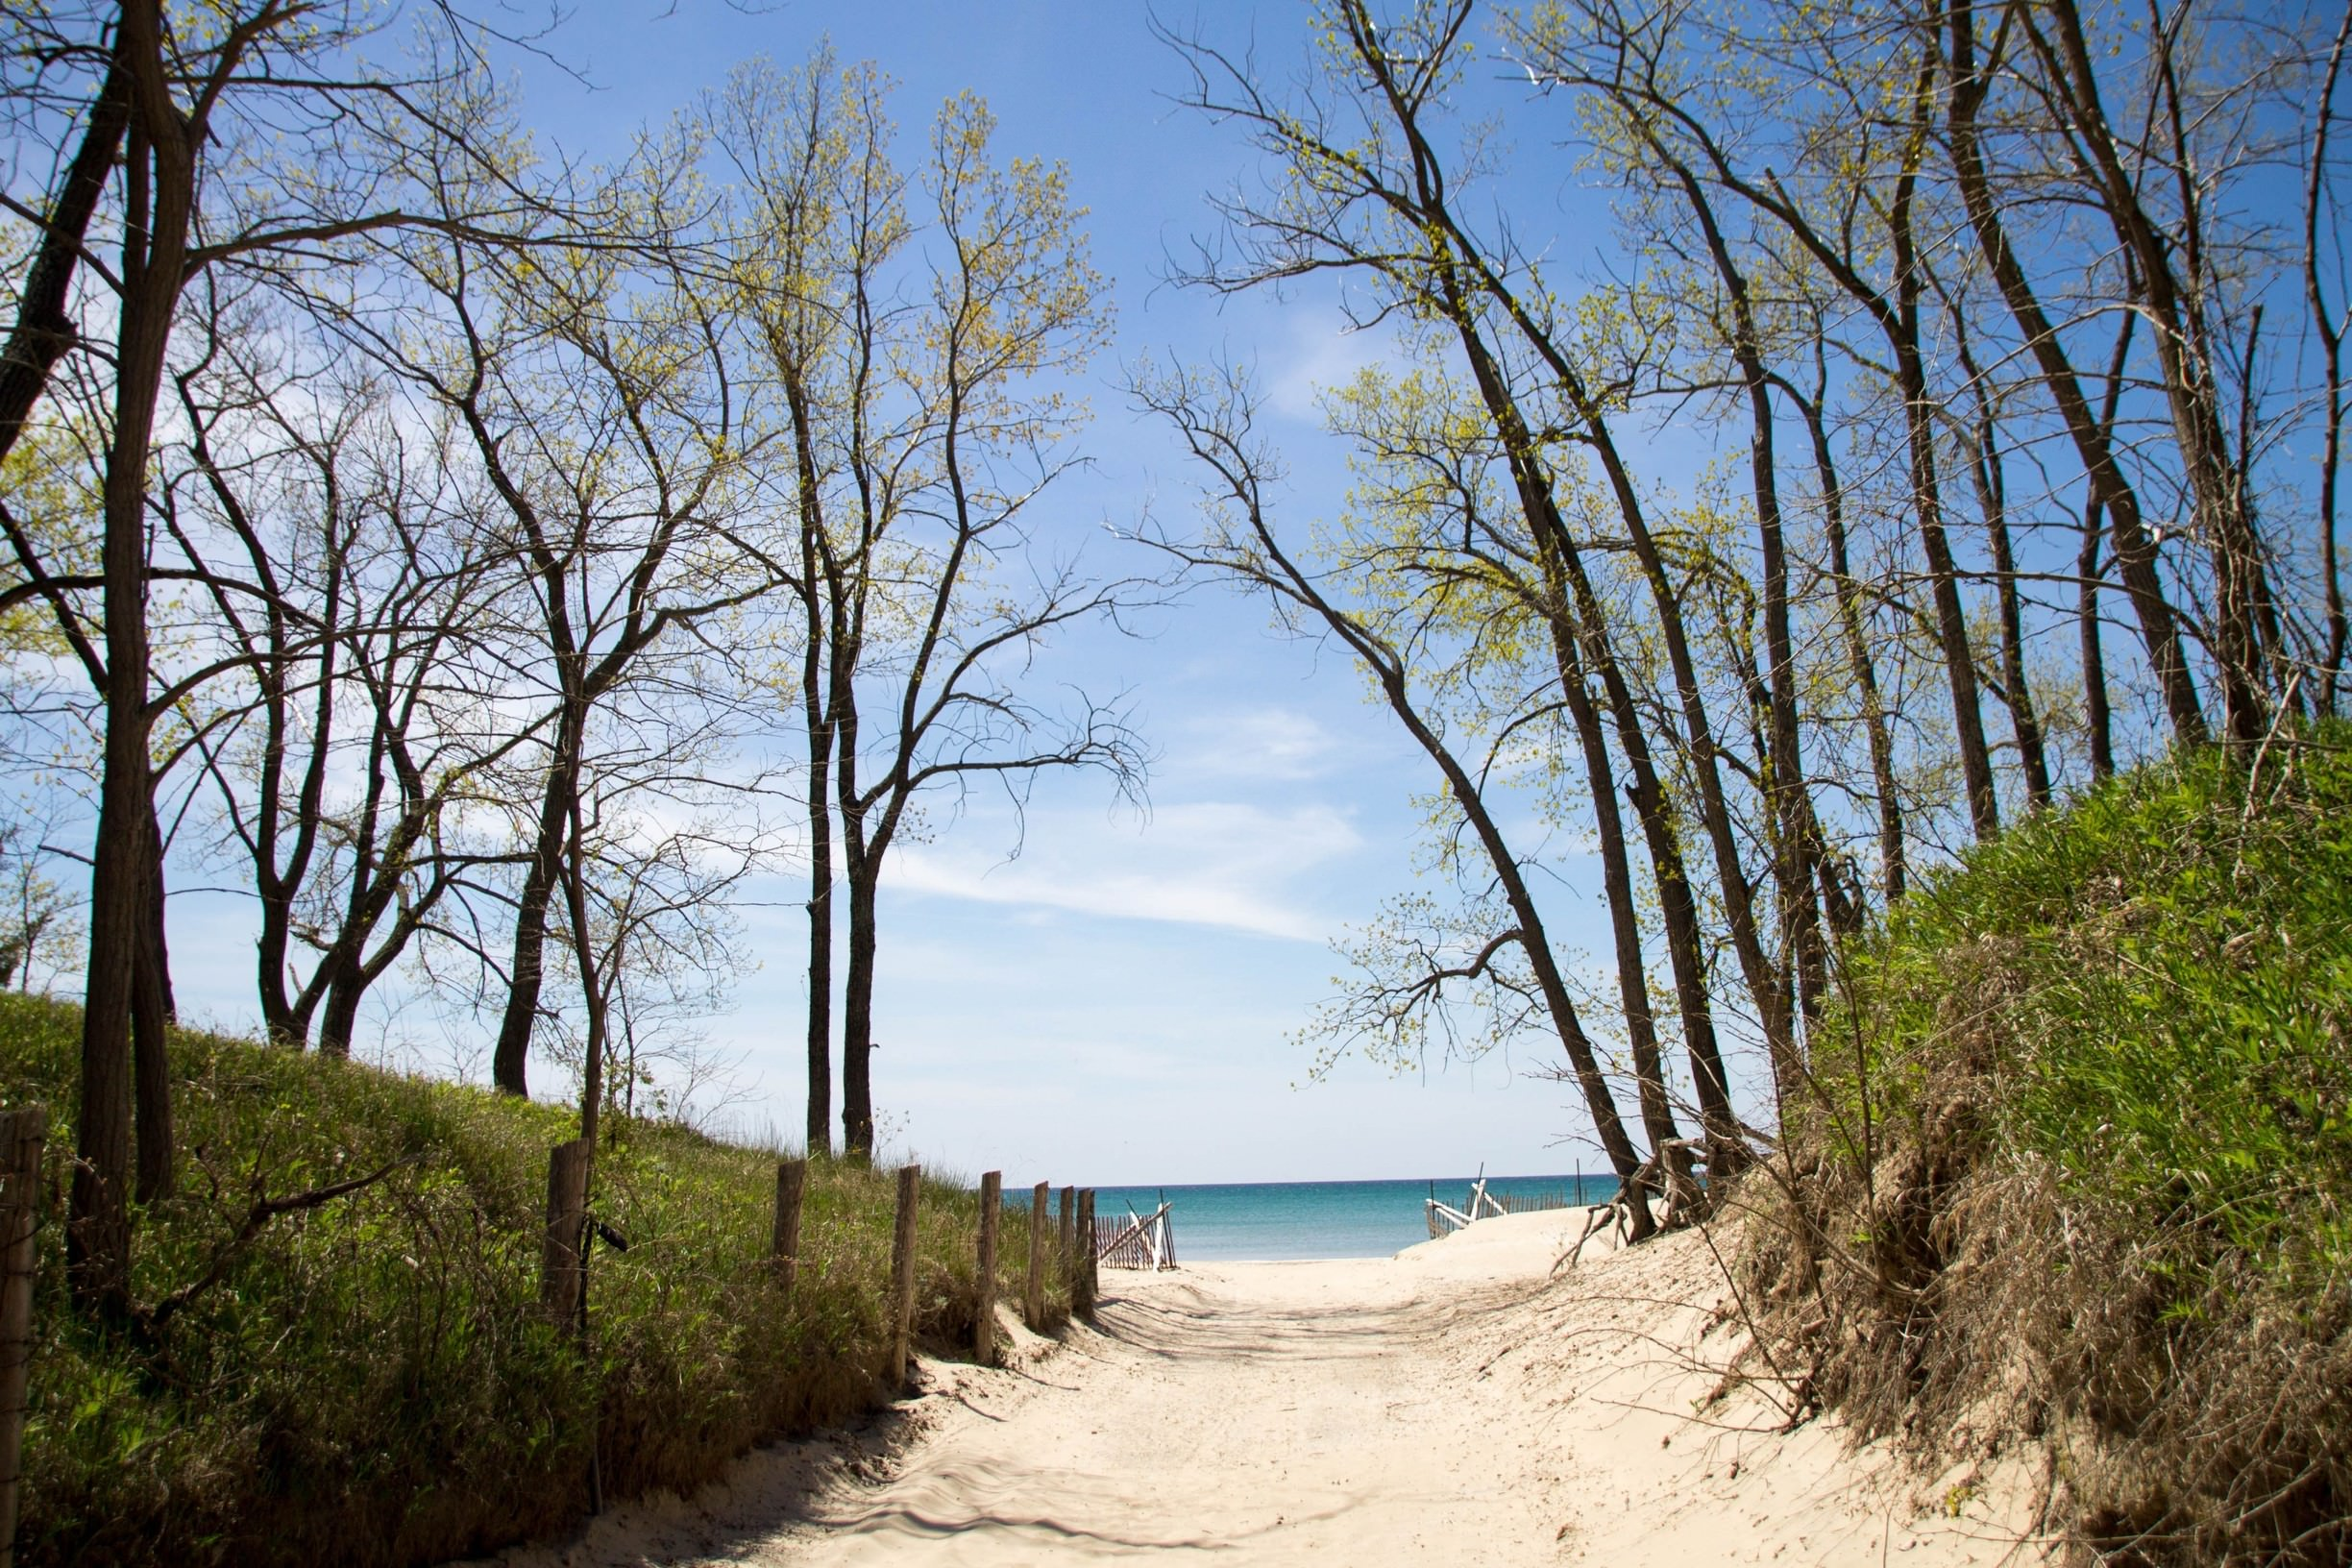 Quinte's Isle Campark — A beach leading into a lake that stretches to the horizon.